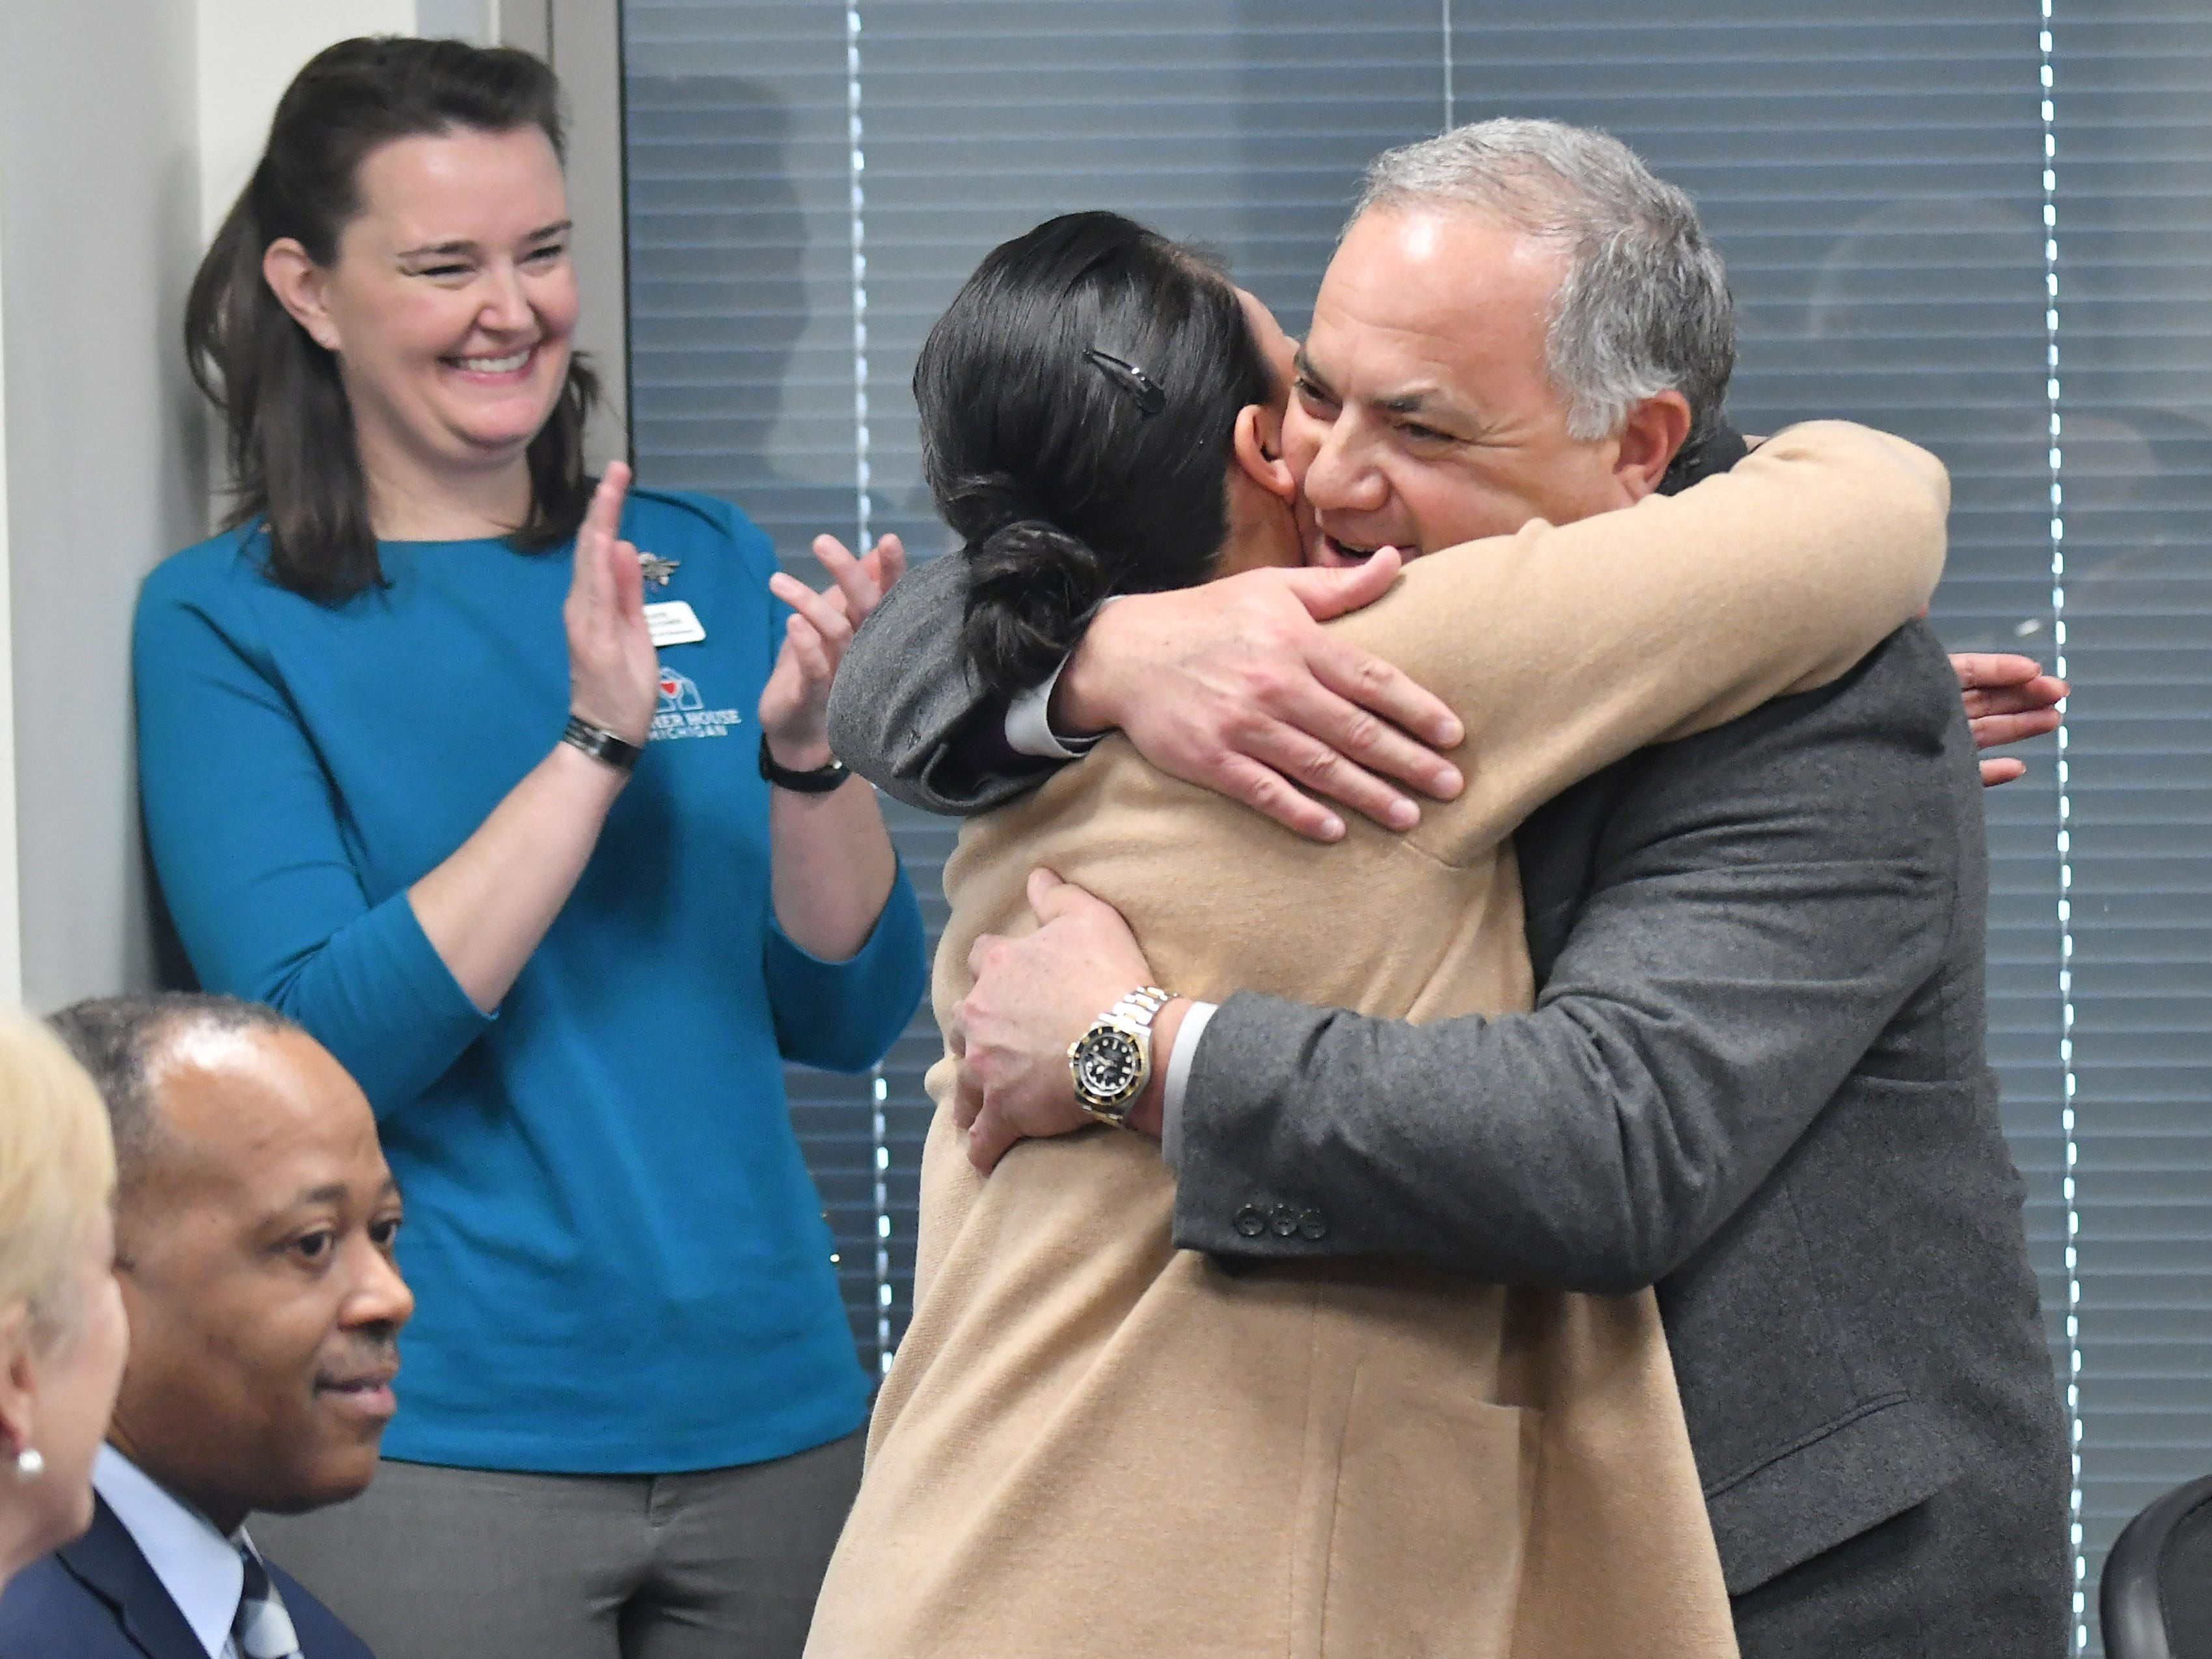 Tigers executive vice president of baseball operations and general manager Al Avila hugs Dorothy Narvaez-Woods whose husband was killed in the line of duty serving as a Navy Seal during a stop on the 2019 Detroit Tigers Winter Caravan at the John D. Dingell VA Medical Center in Detroit on Jan. 24, 2019. Narvaez-Woods spoke at the event and also served in the Navy.